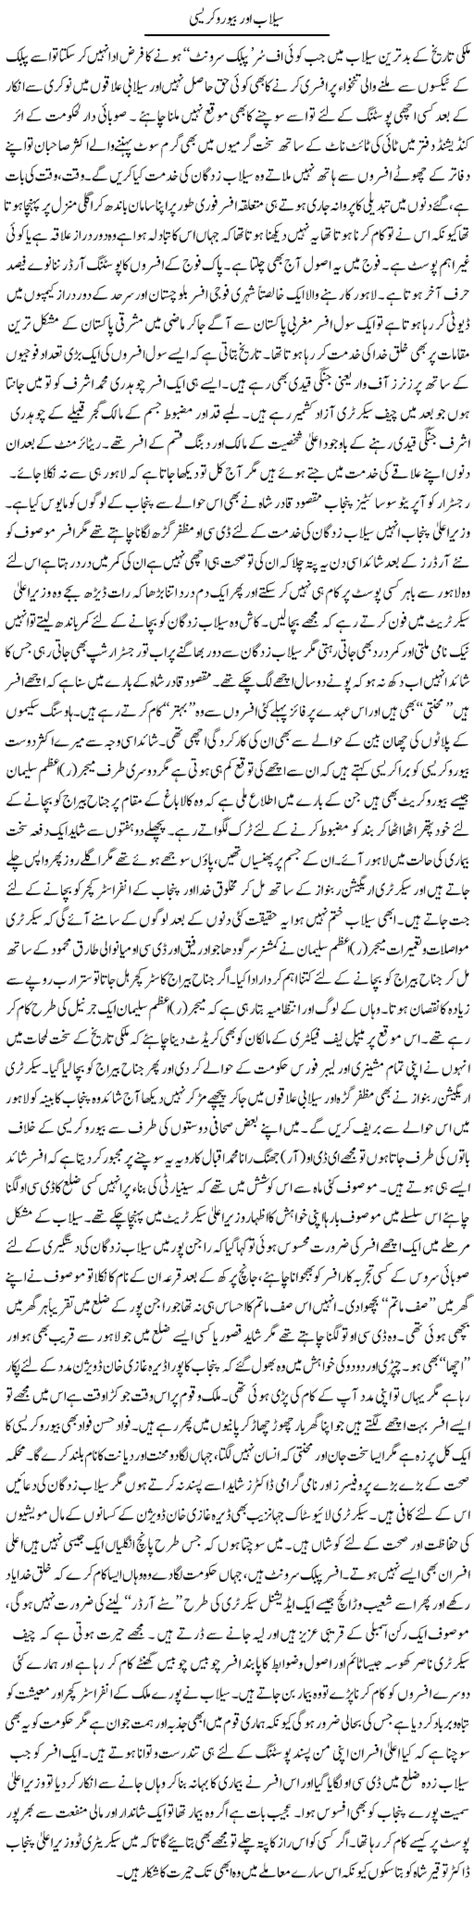 Flood In Pakistan Essay In Urdu Language by Urdu Columns 08 16 10